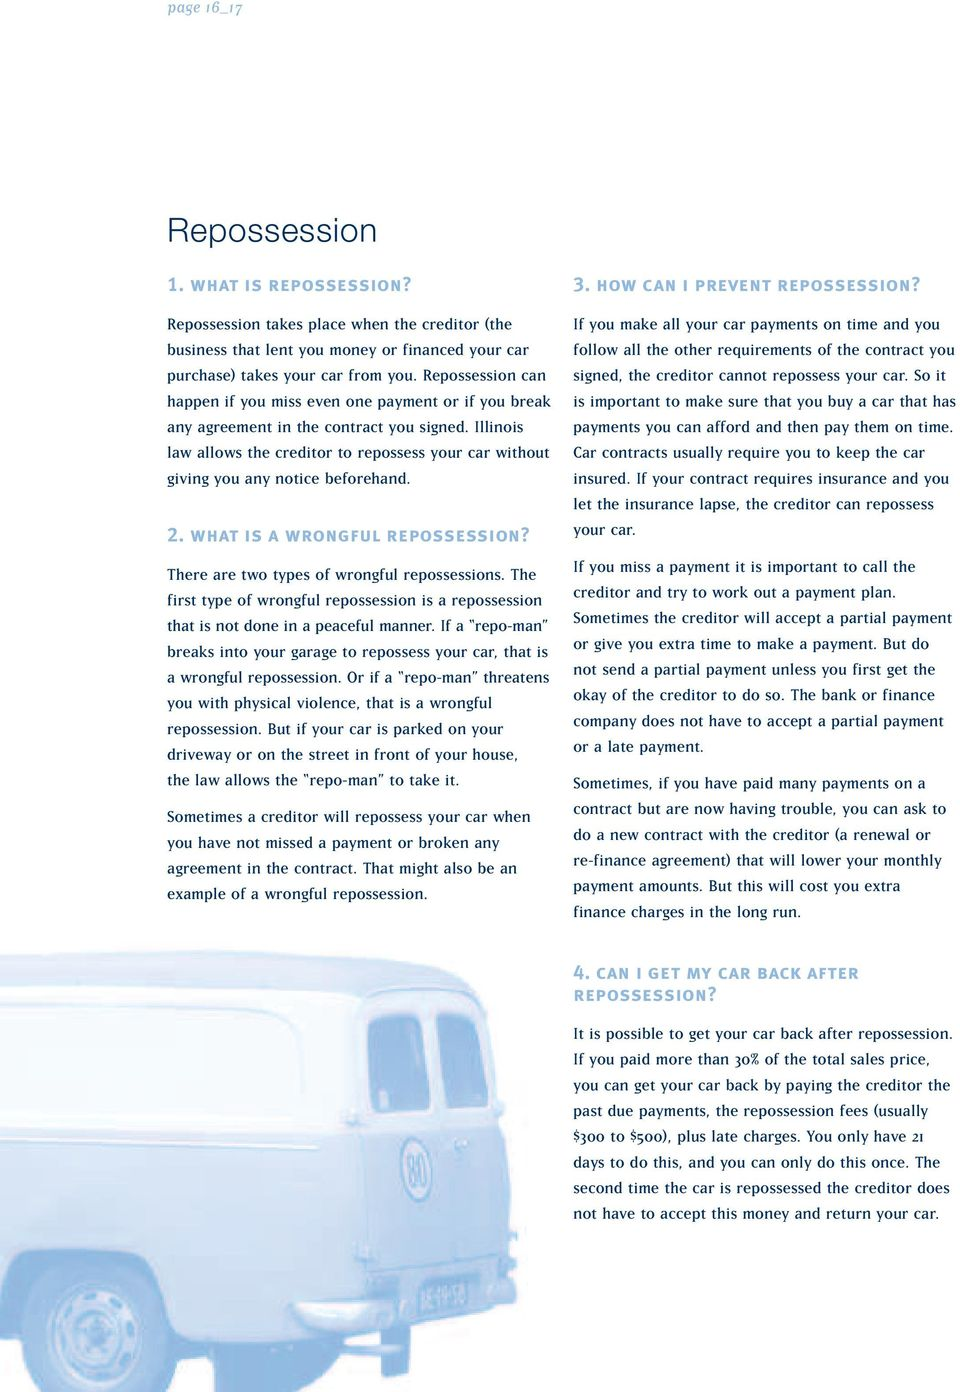 Illinois law allows the creditor to repossess your car without giving you any notice beforehand. 2. what is a wrongful repossession? There are two types of wrongful repossessions.